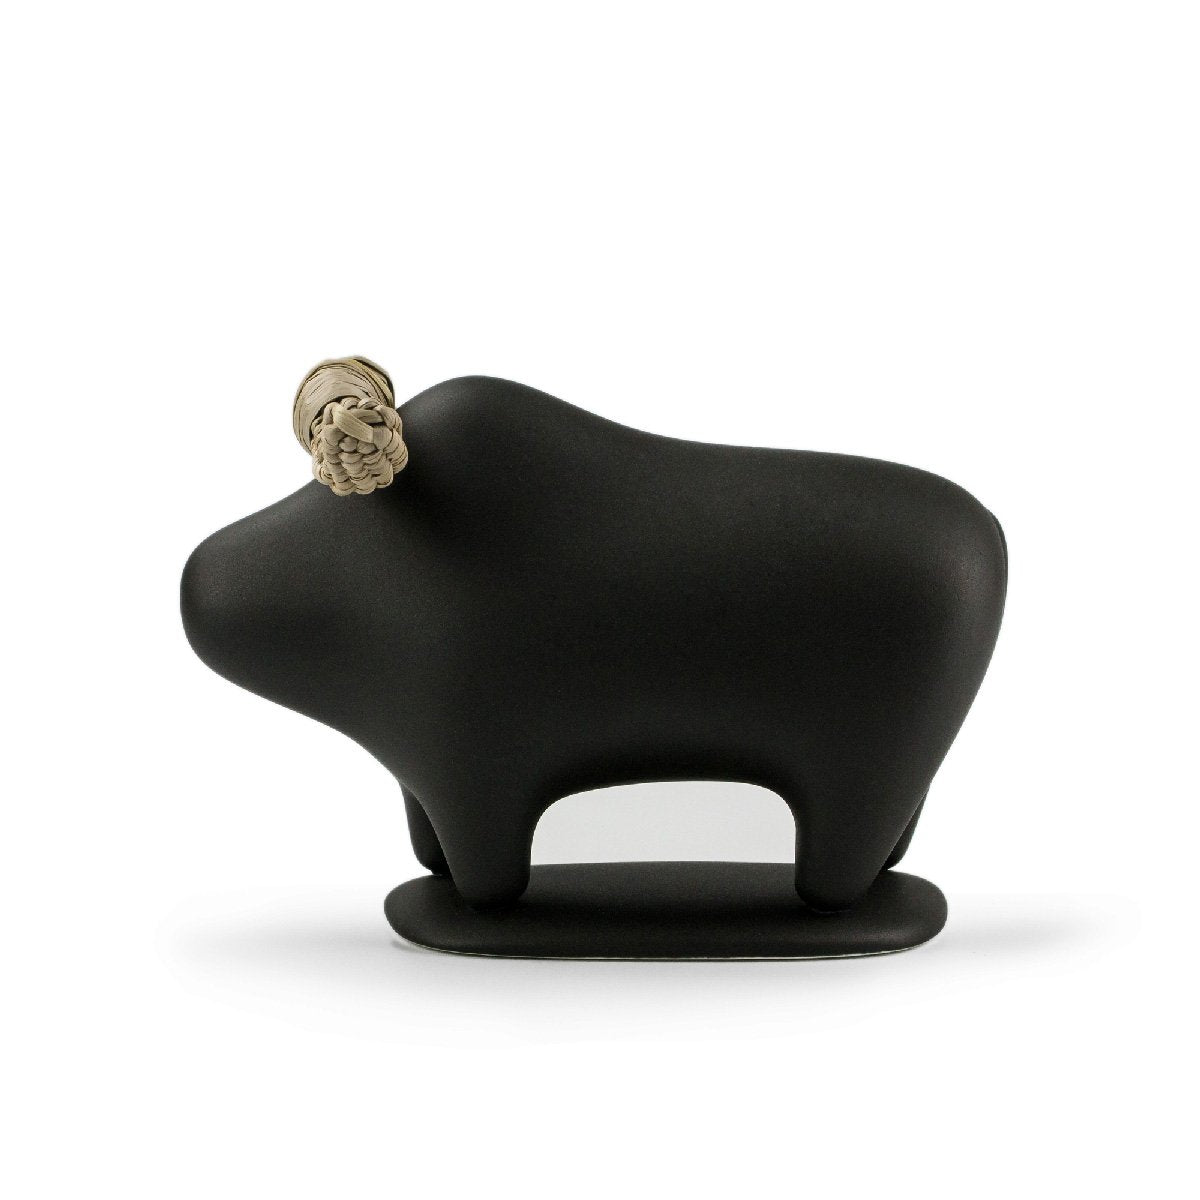 Black playful buffalo animal decor that brings joy to your interiors